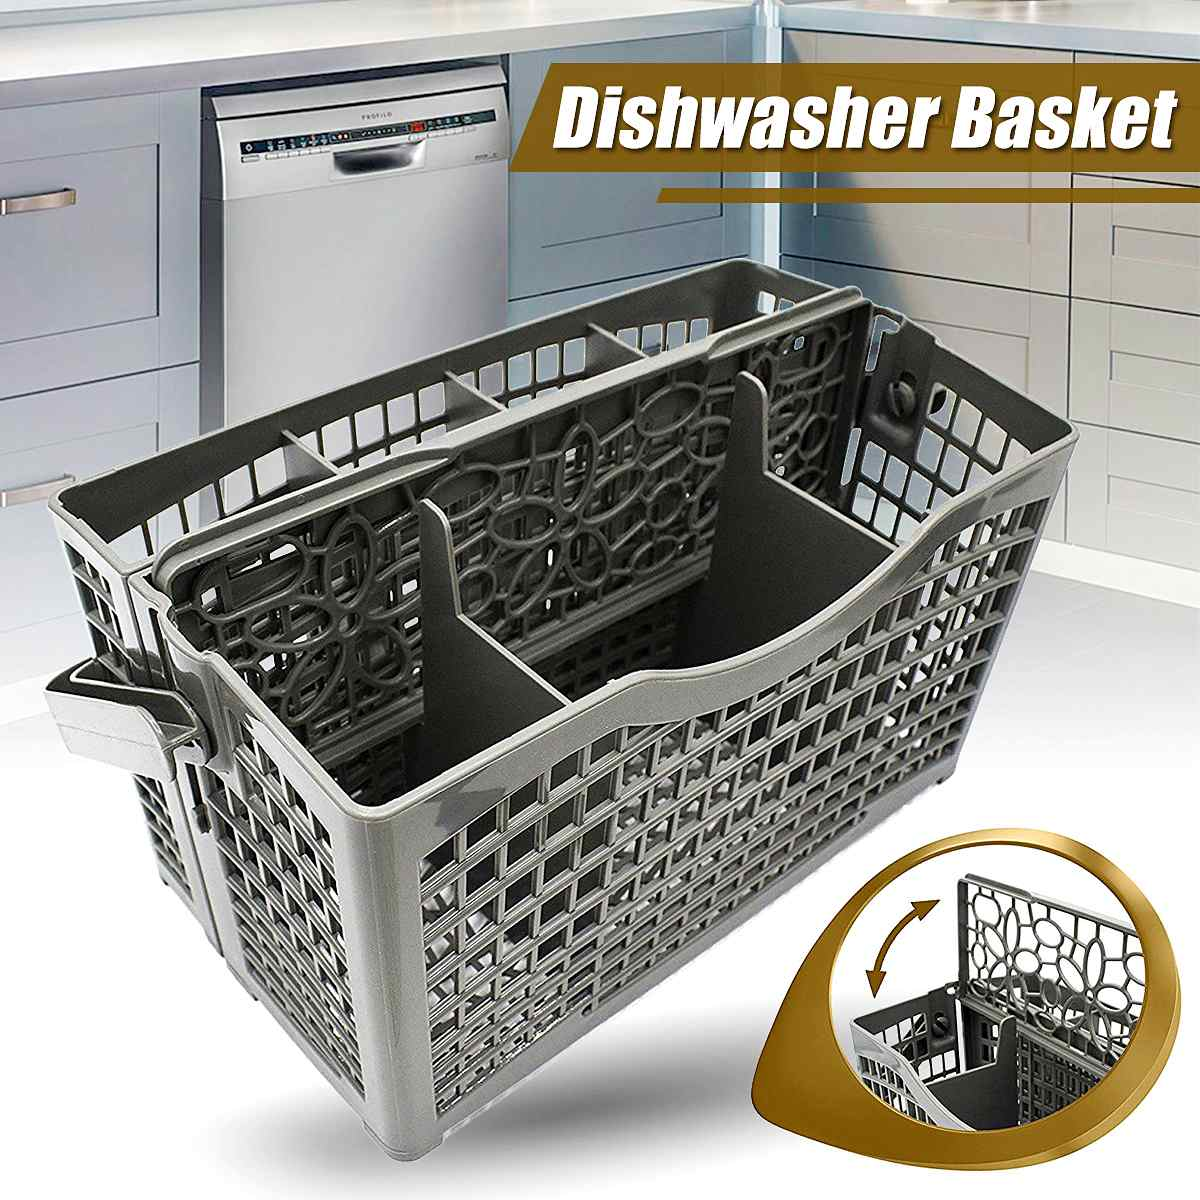 Universal Dishwasher Basket Cutlery Basket Dishwasher Parts Dish Washer Storage Box For Bosch Maytag Whirpool LG Samsung GE